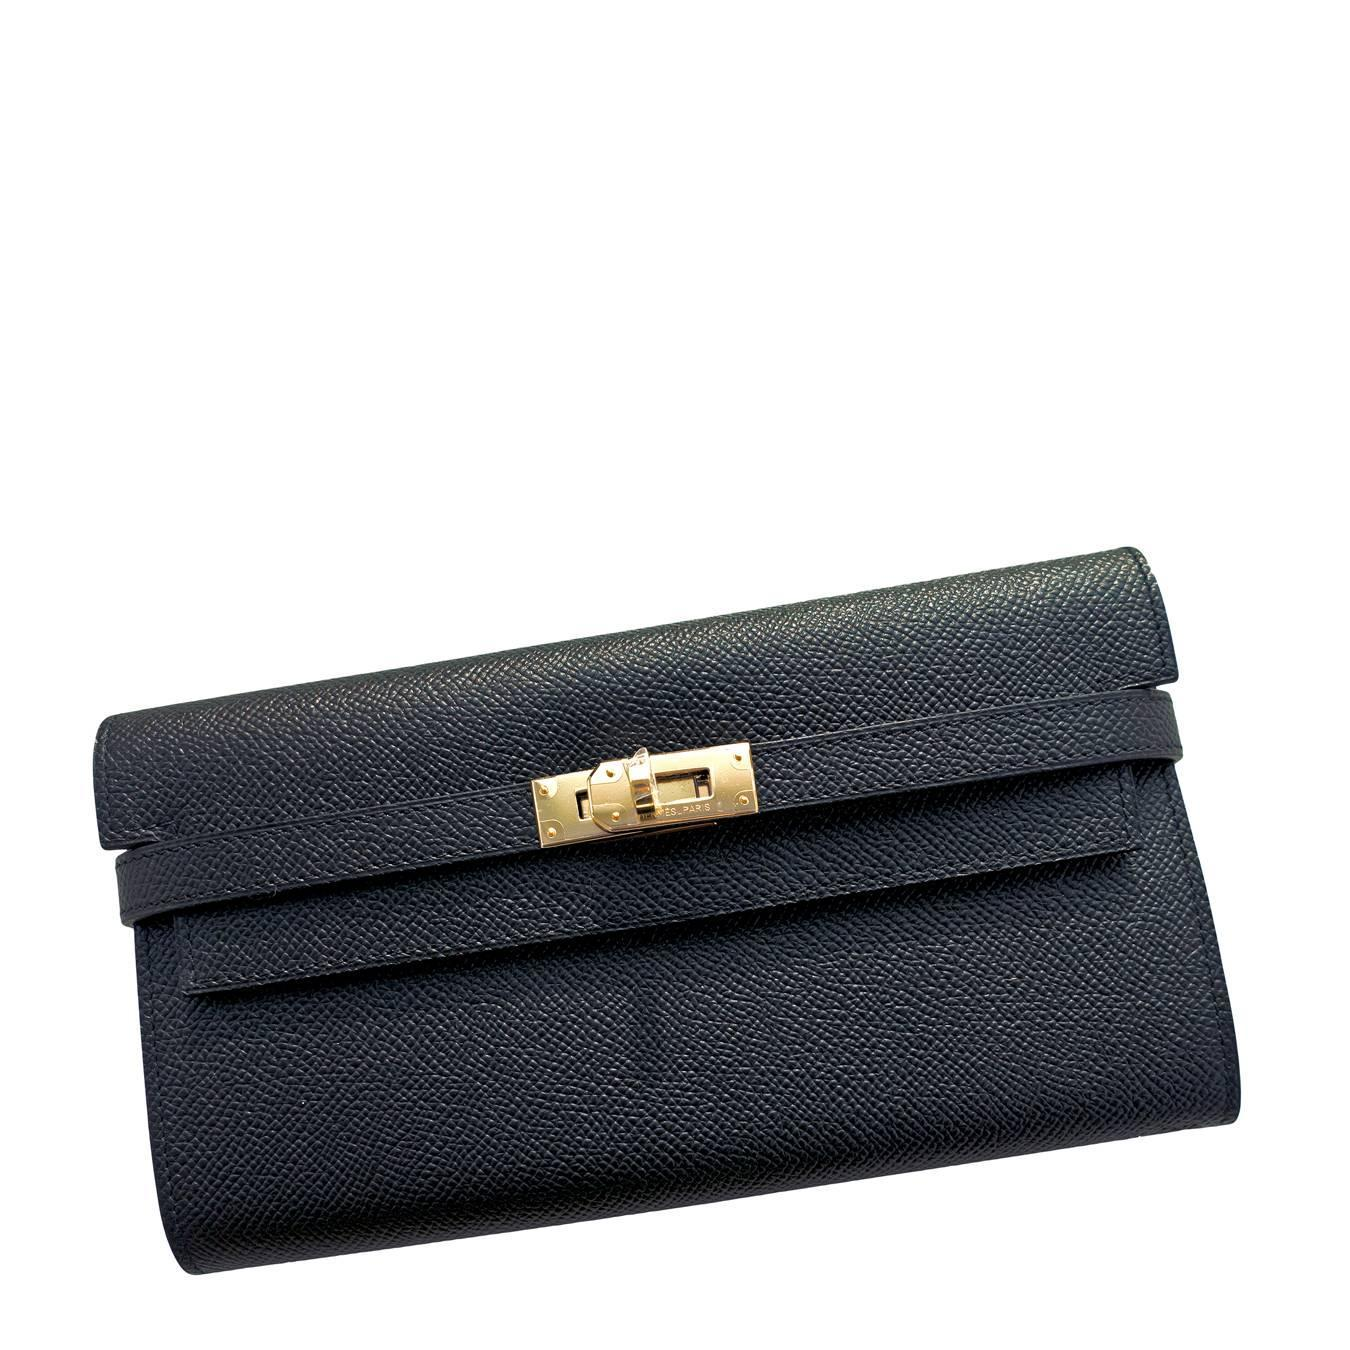 hermes kelly long wallet clutch black epsom palladium hardware